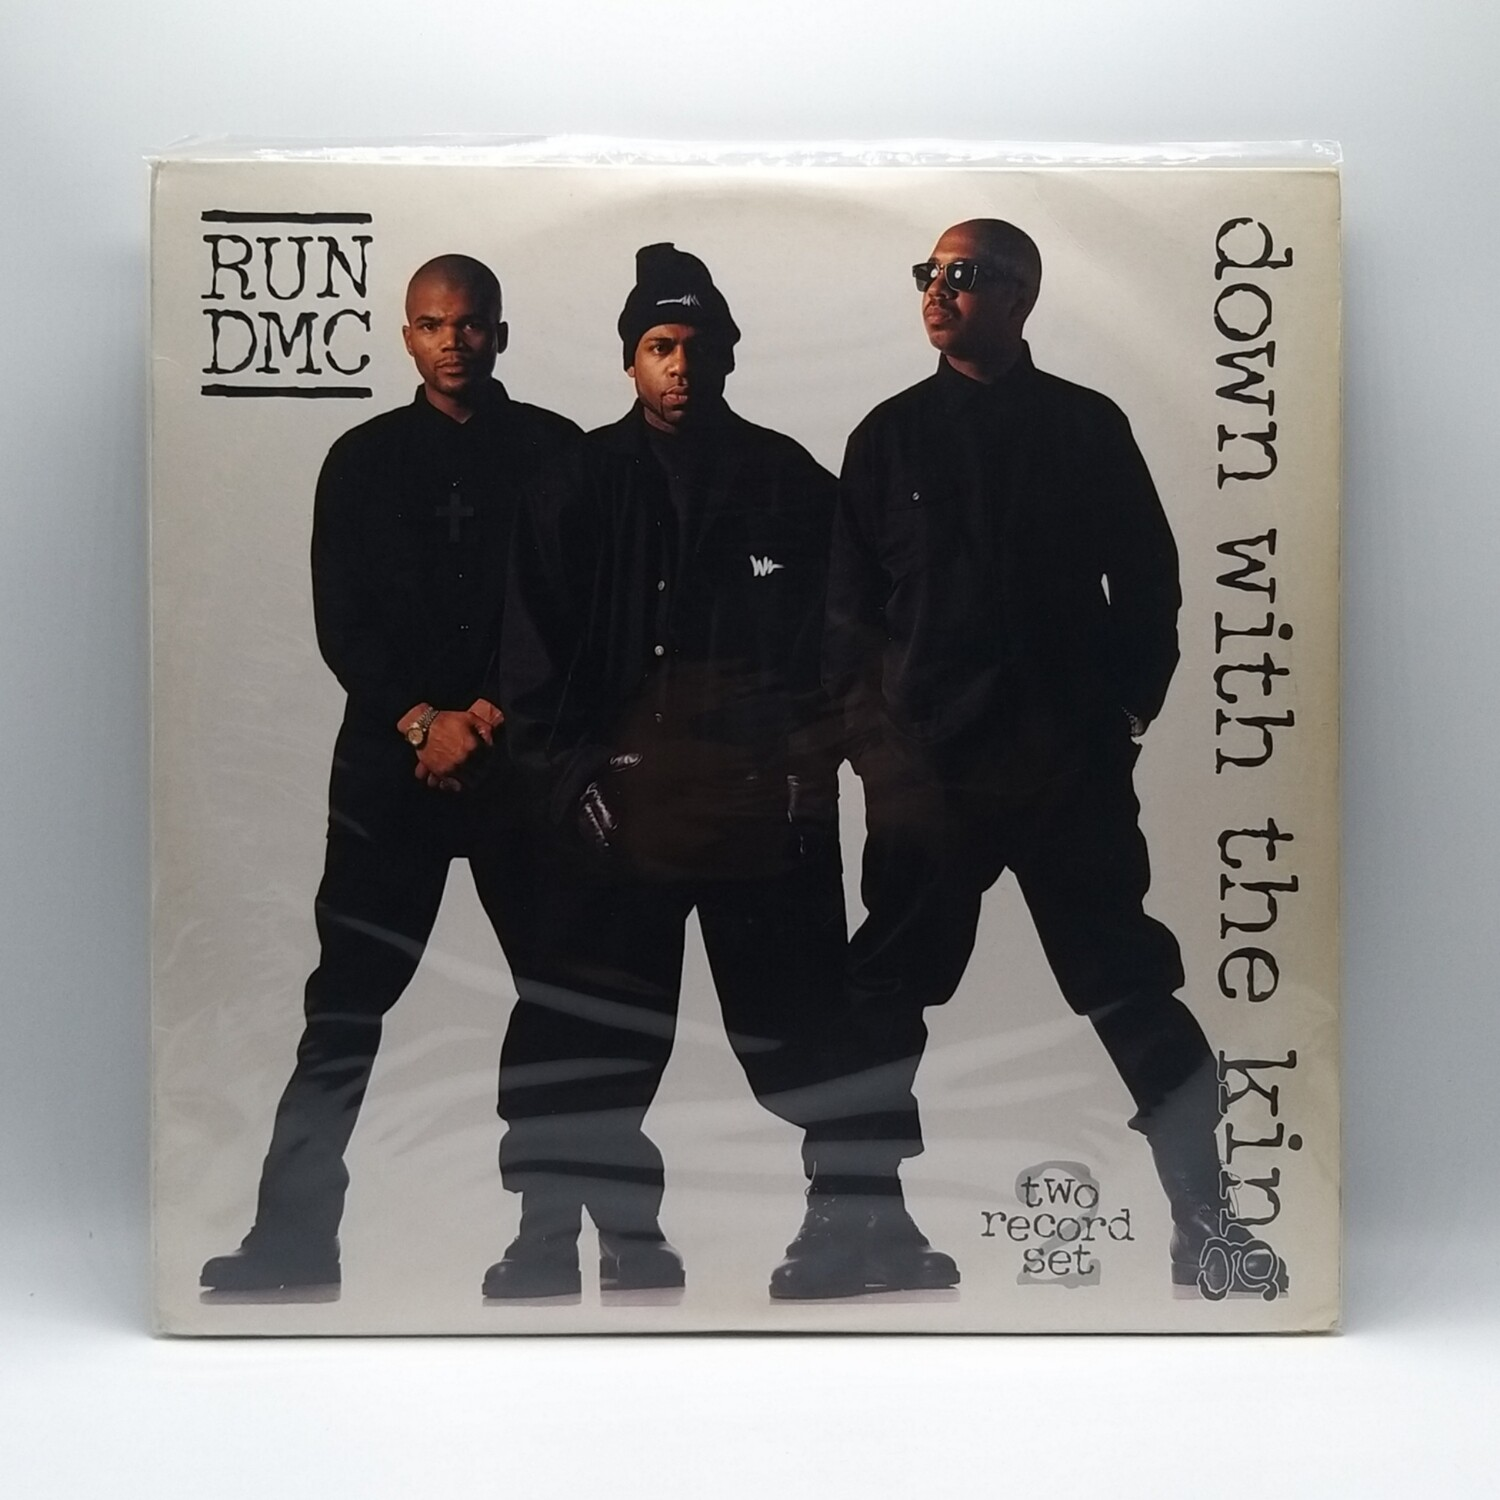 RUN DMC -DOWN WITH THE KING- 2XLP